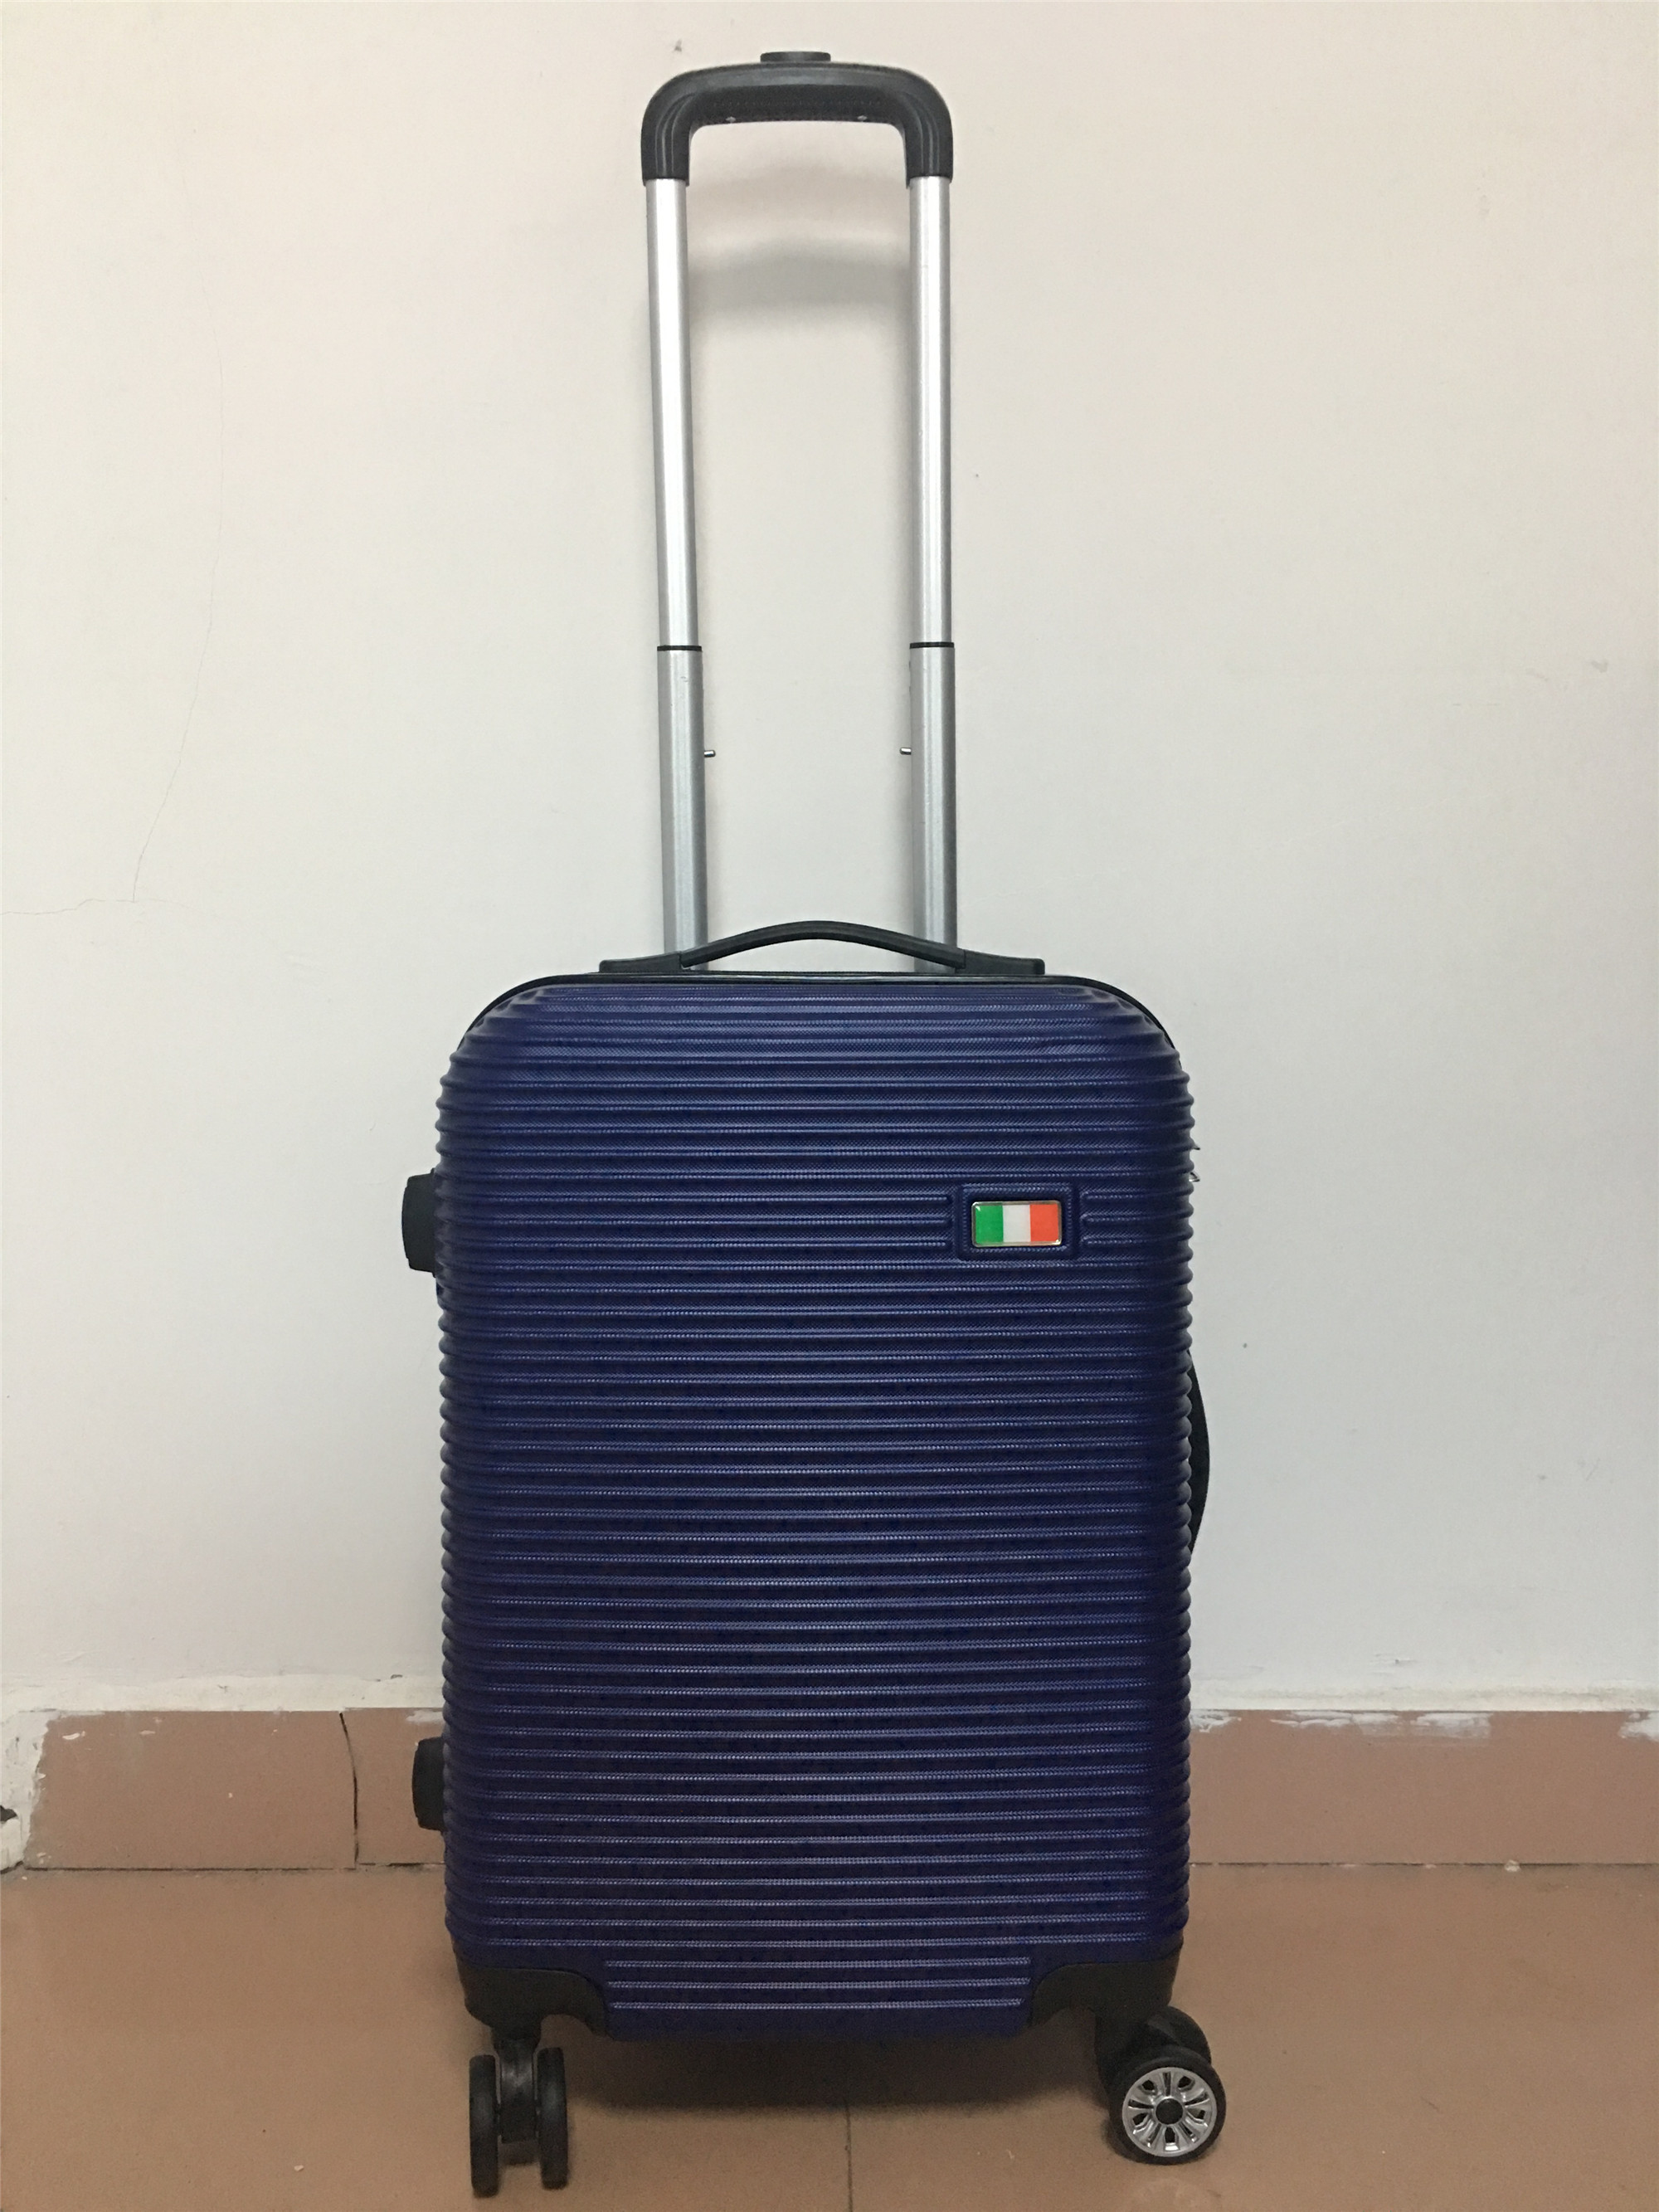 yanteng great designer luggage with customized logo